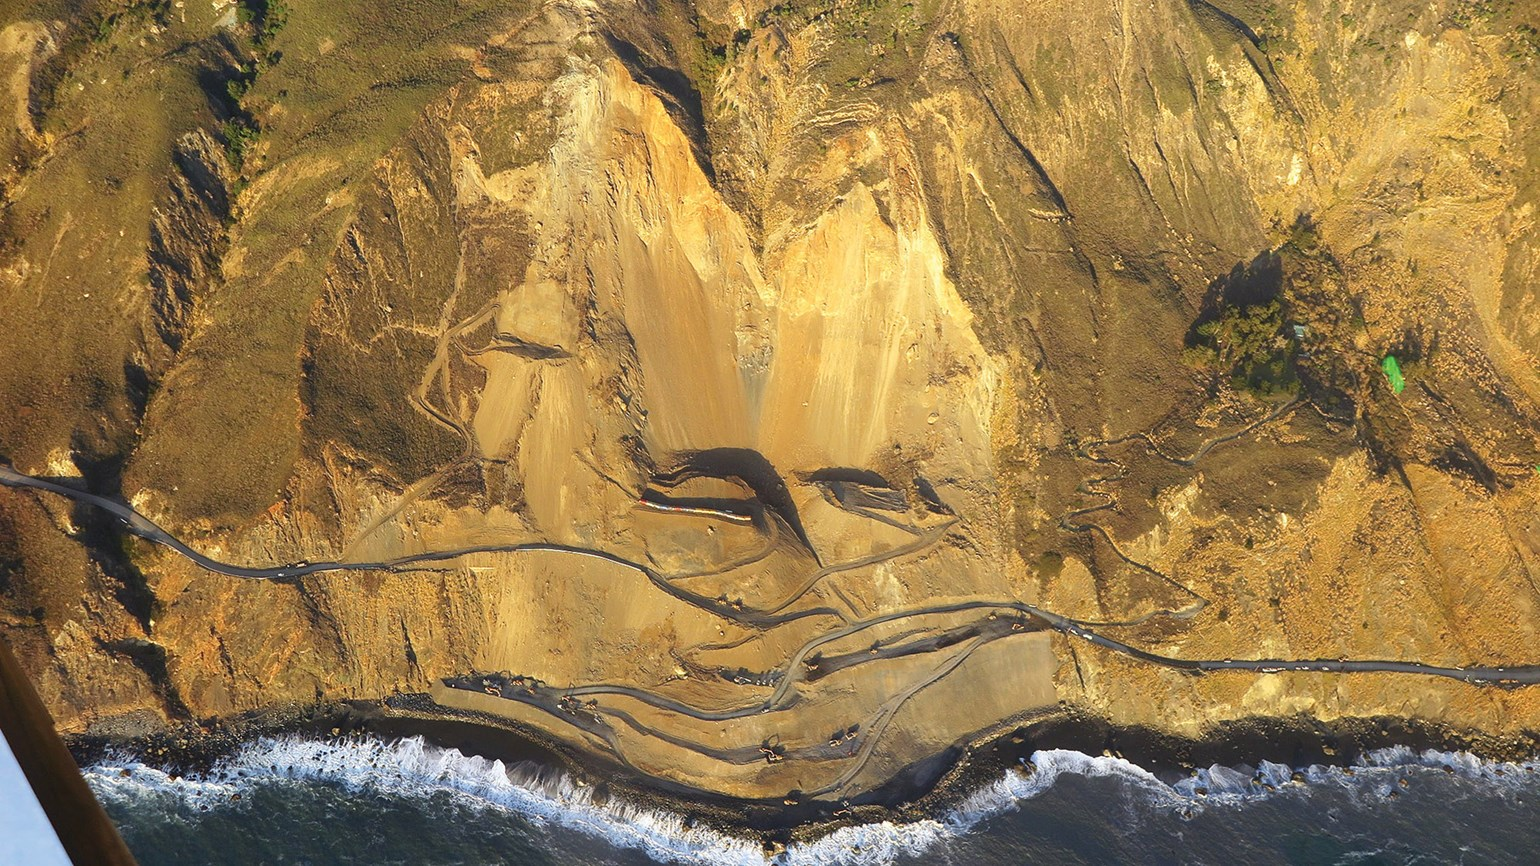 Big Sur back in business after landslide-choked roads reopen